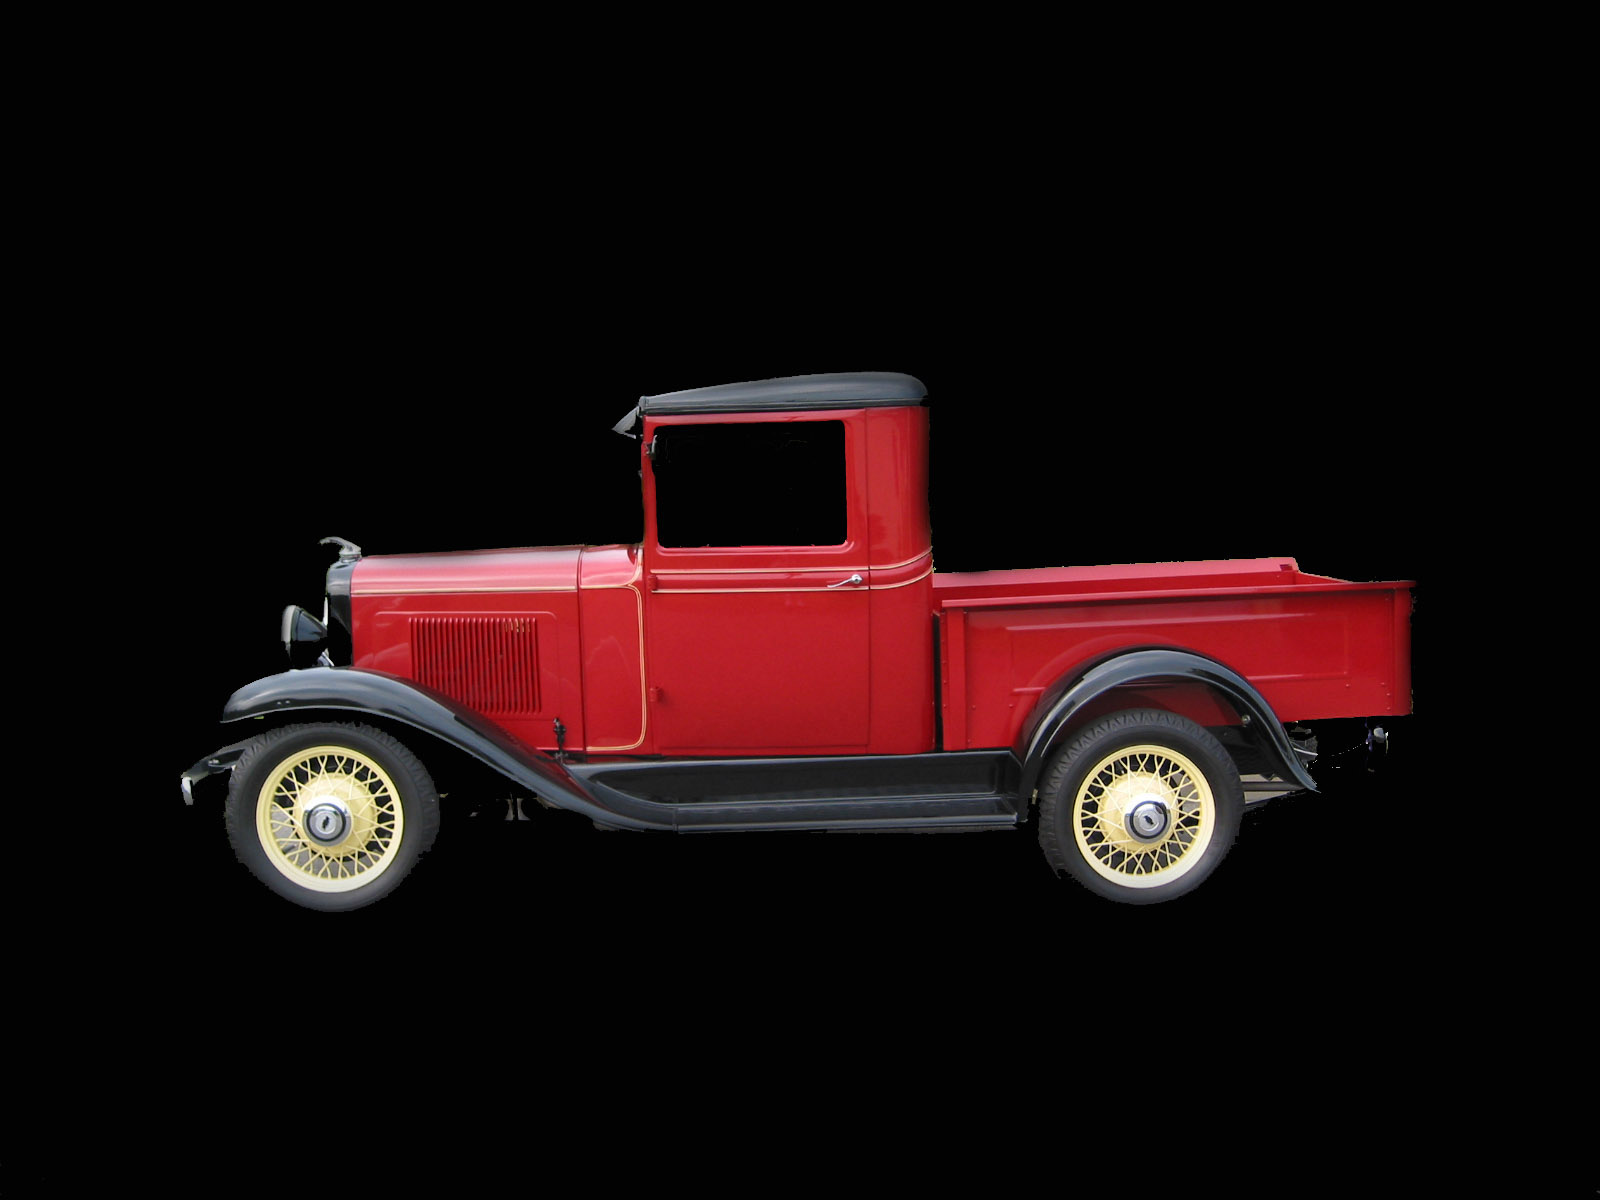 Ford Truck Hd Wallpaper Ford Model A Truck Wallpaper And Background Image